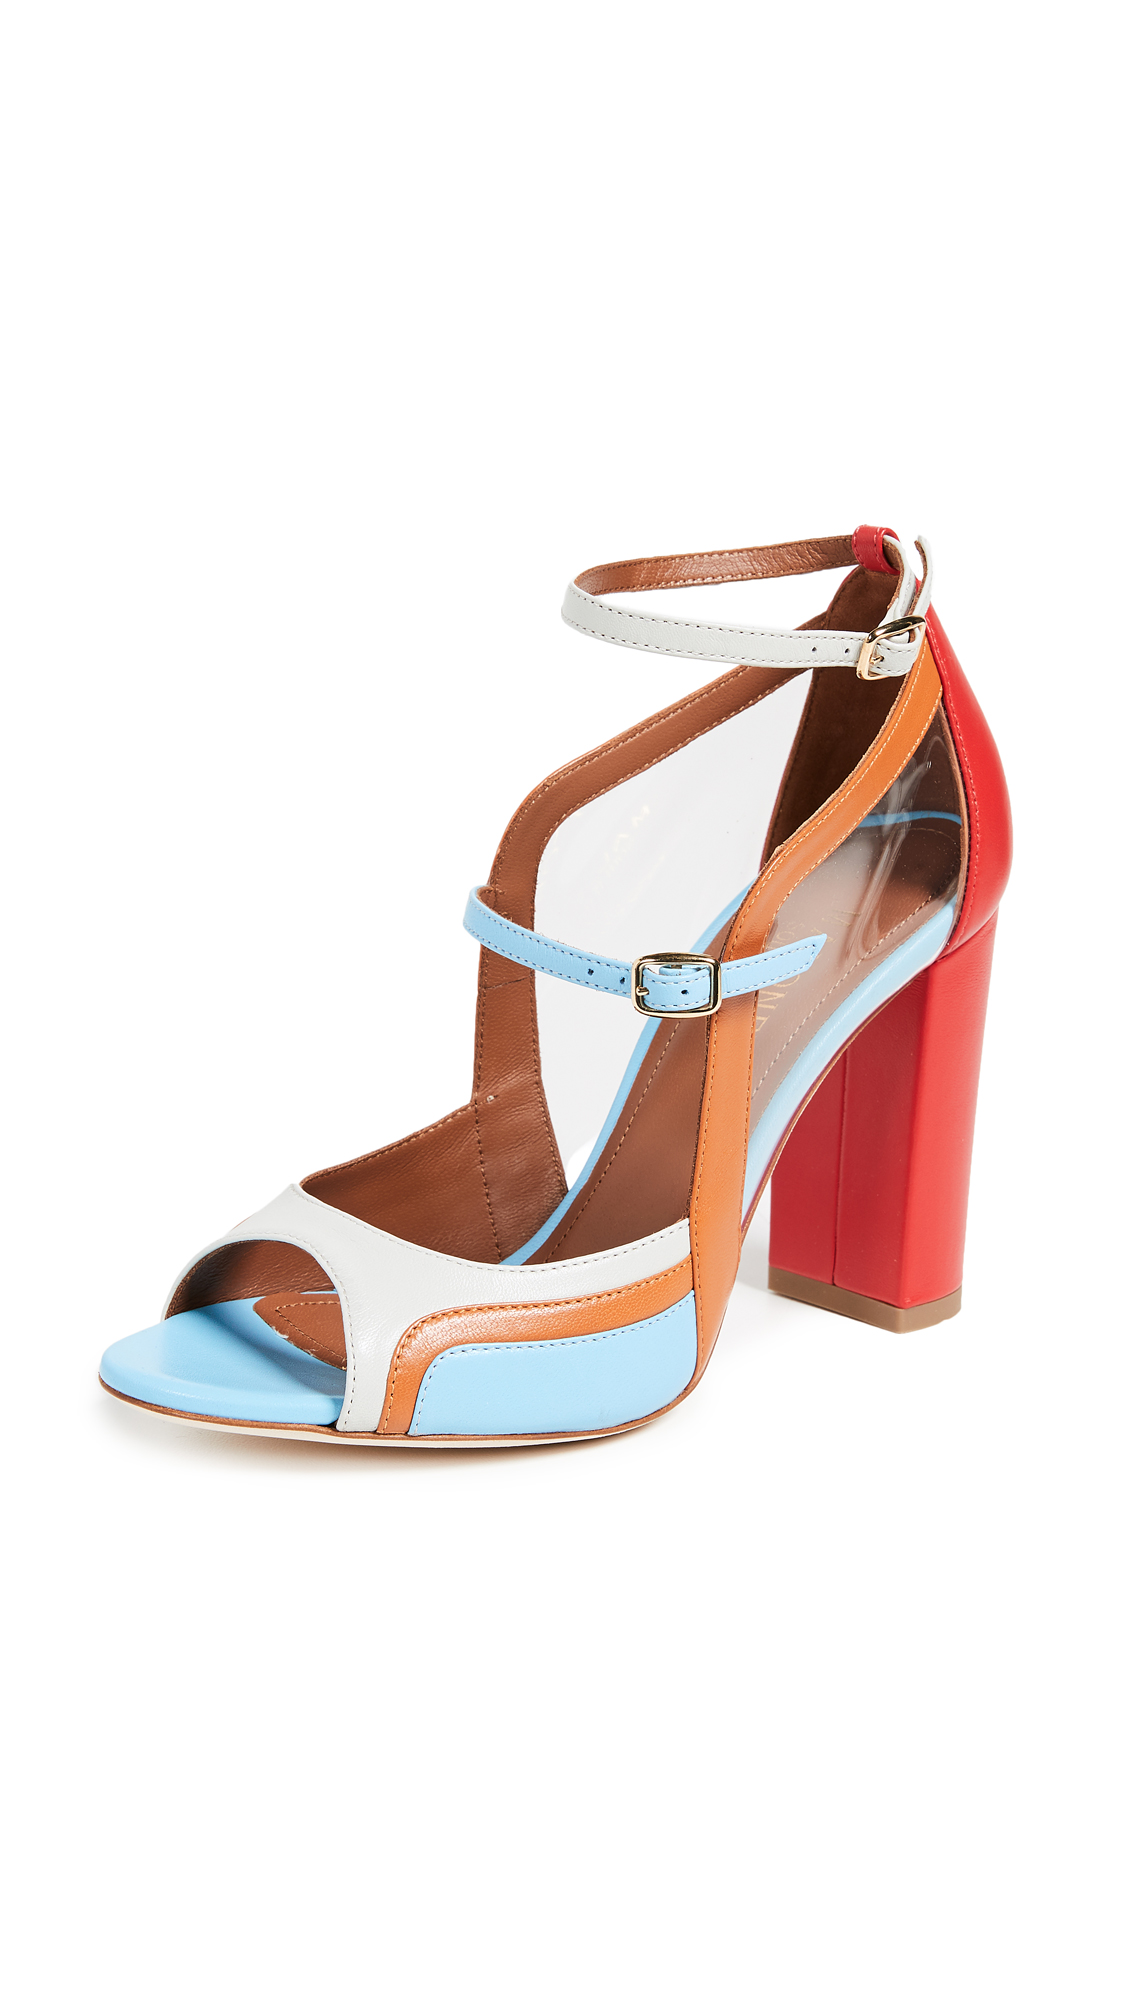 Malone Souliers Flan Peep Toe Pumps - Flame/Cocoa/Powder Blue/Ice